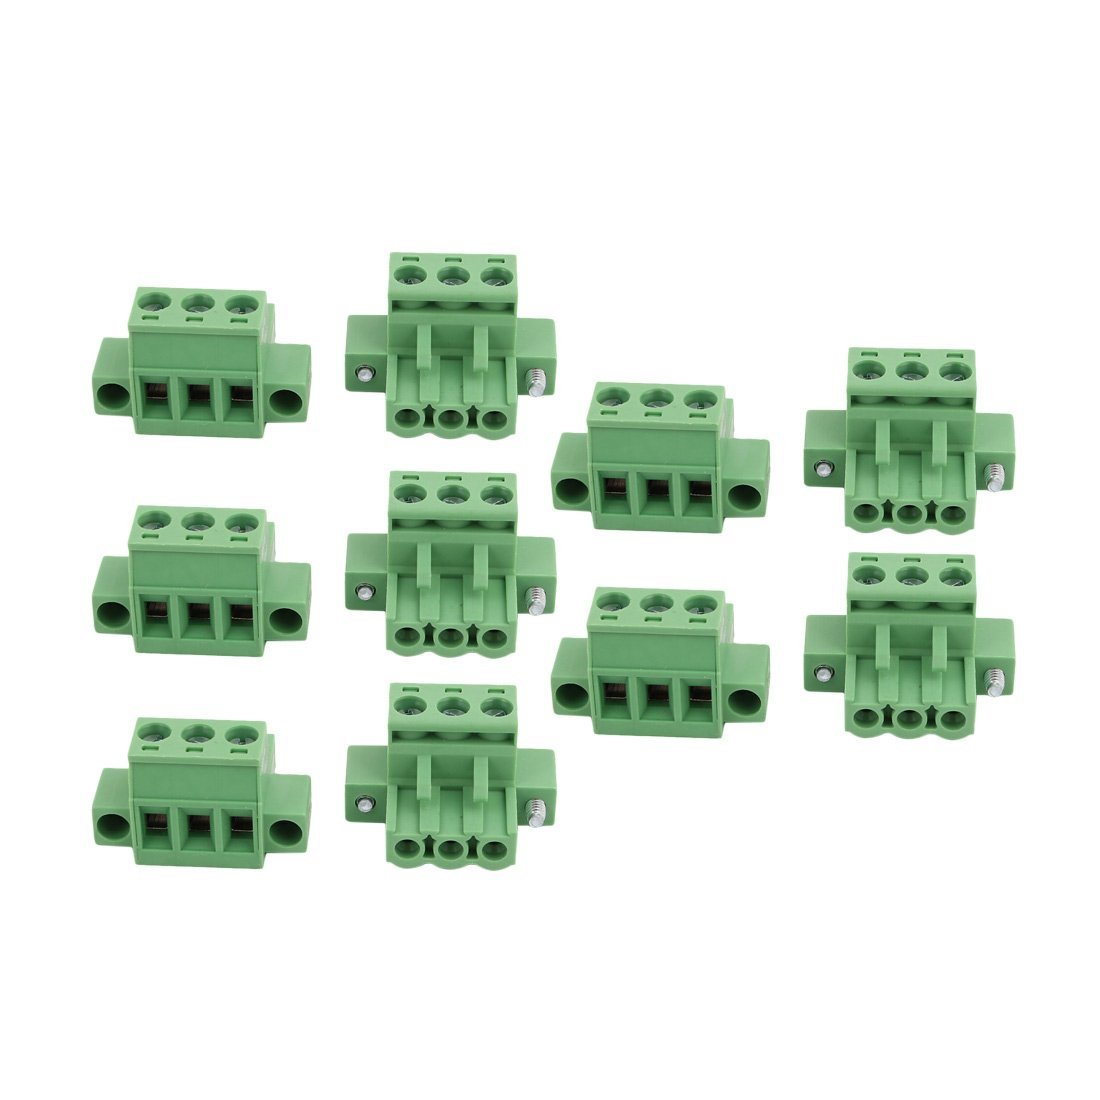 uxcell 10Pcs LC1M AC300V 15A 5.0mm Pitch 3P PCB Mount Terminal Block Wire Connector